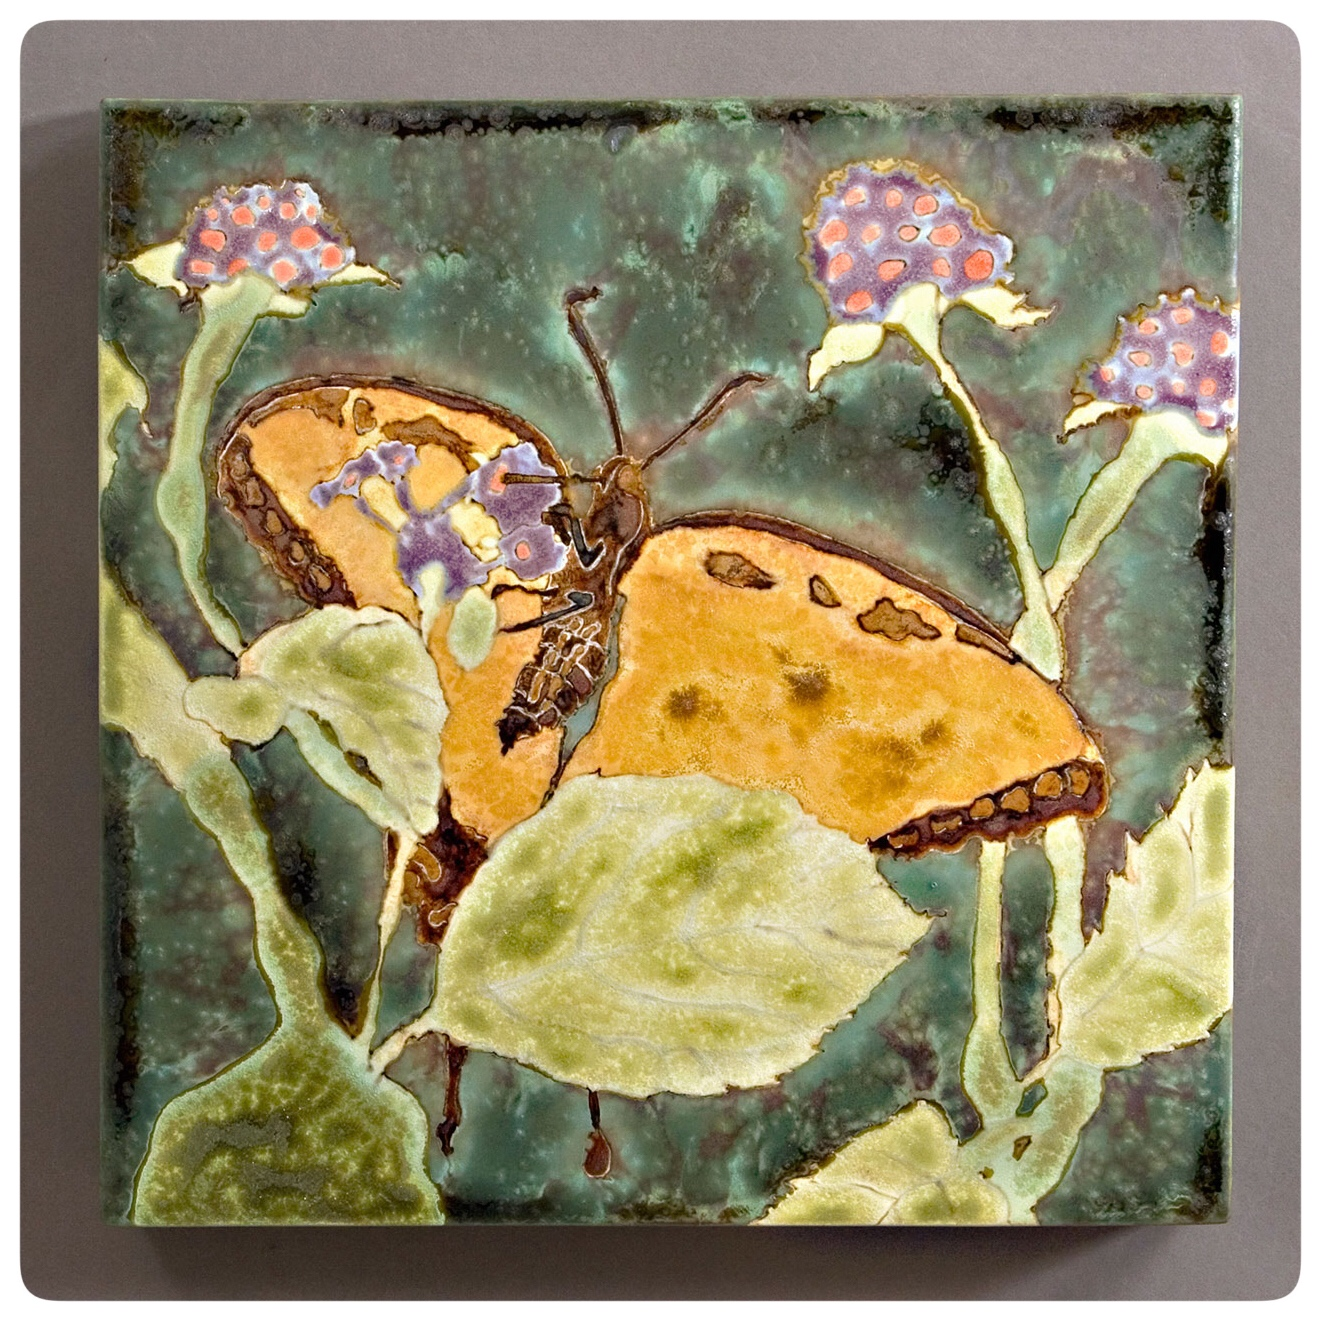 Butterfly glaze painting by samantha henneke, seagrove, NC